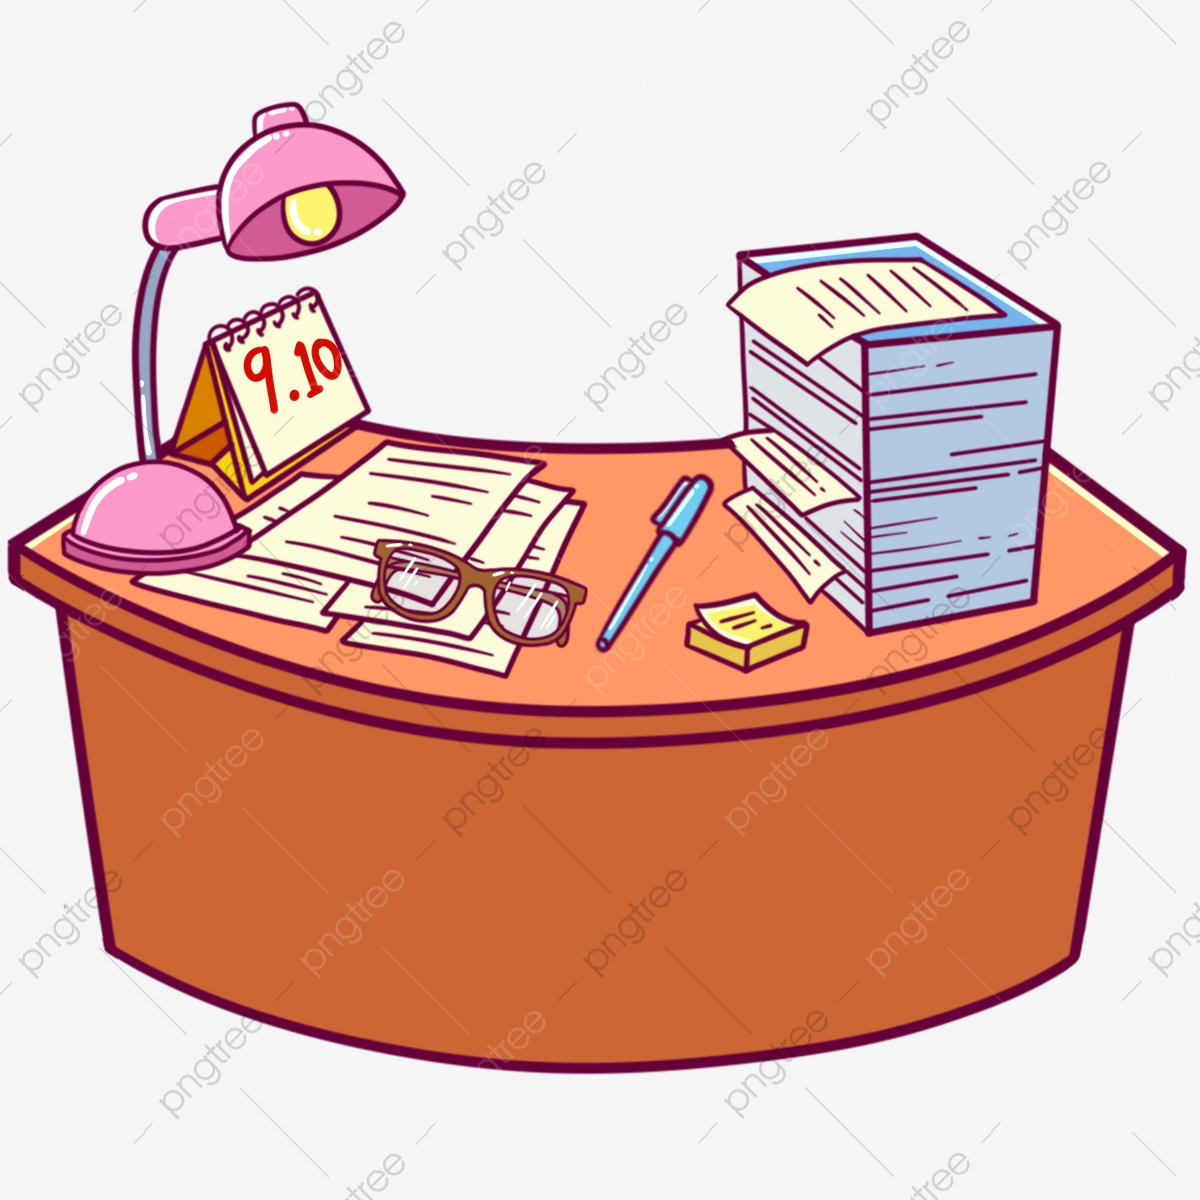 Teacher Desk Png Vector Psd And Clipart With Transparent Background For Free Download Pngtree